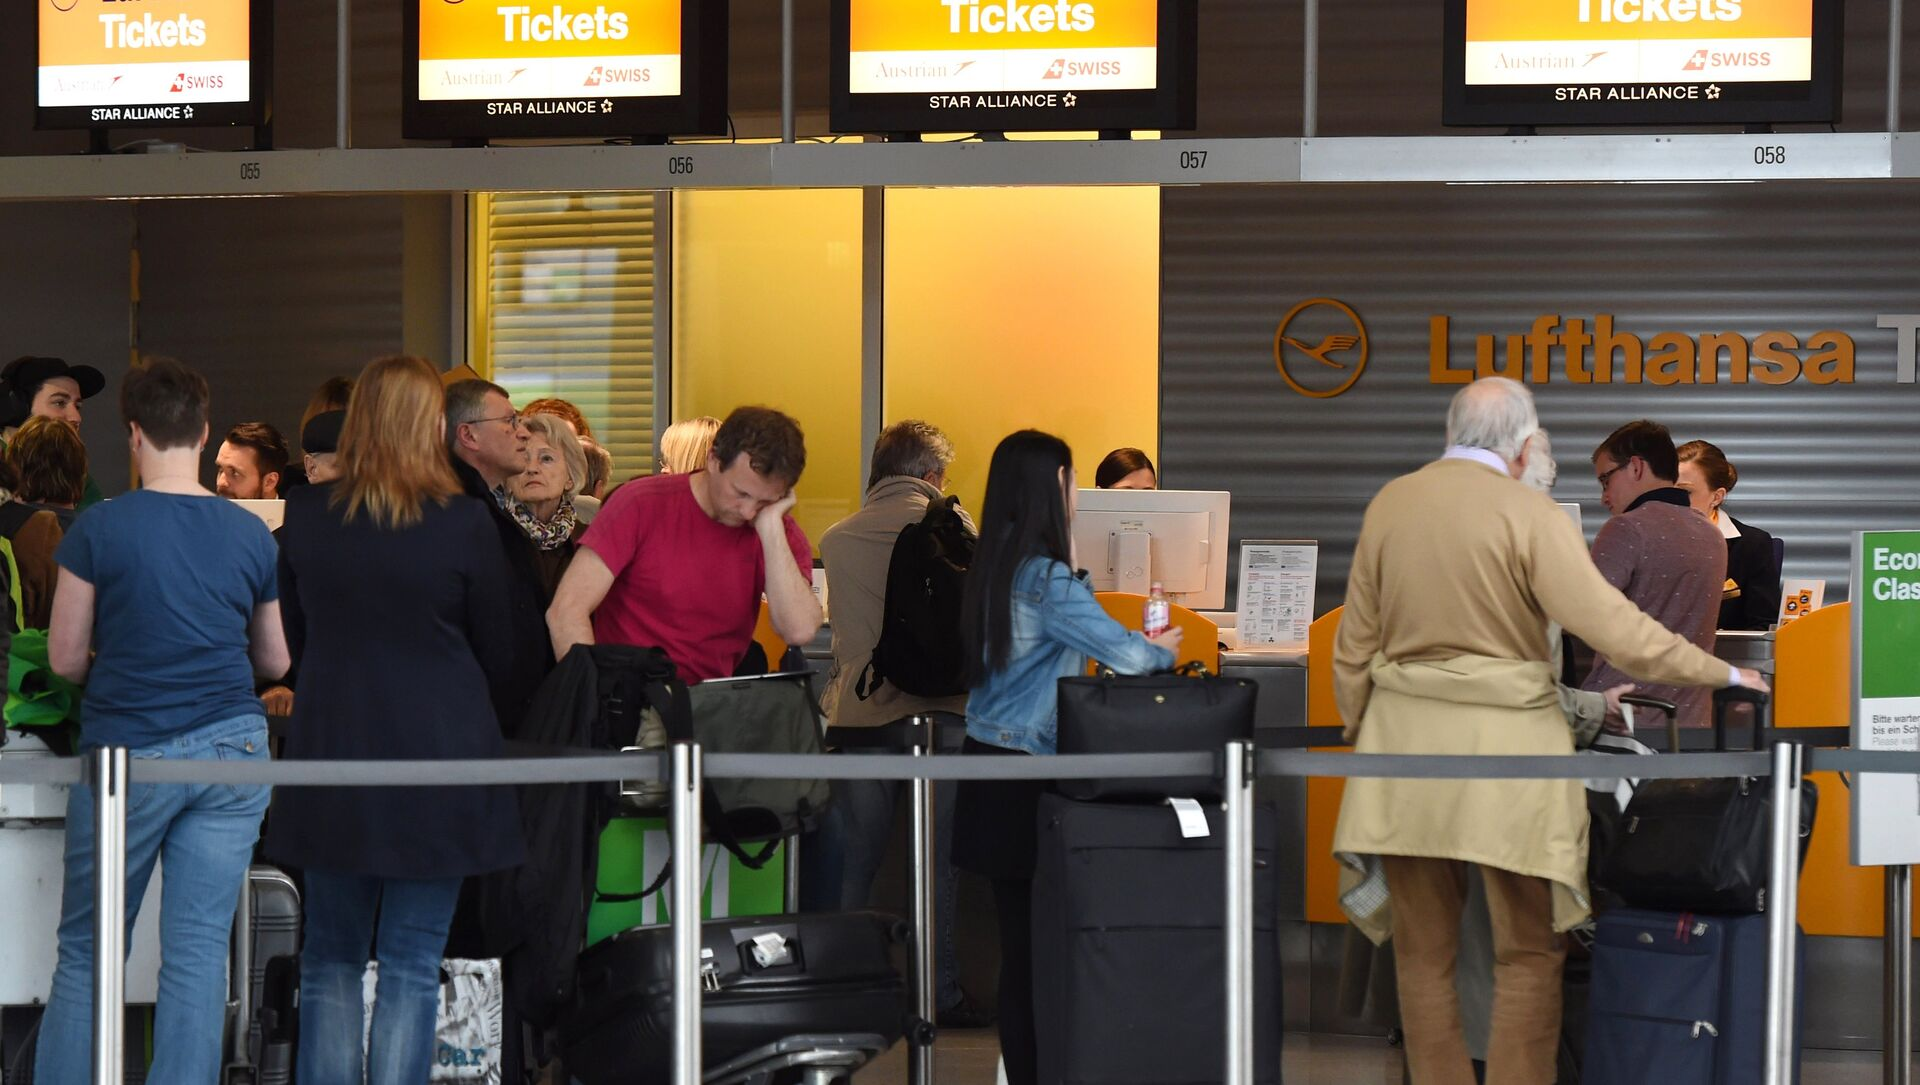 Passengers queue at a Lufthansa counter at the Franz-Josef-Strauss-airport in Munich, southern Germany, on April 27, 2016.  - Sputnik International, 1920, 24.05.2021